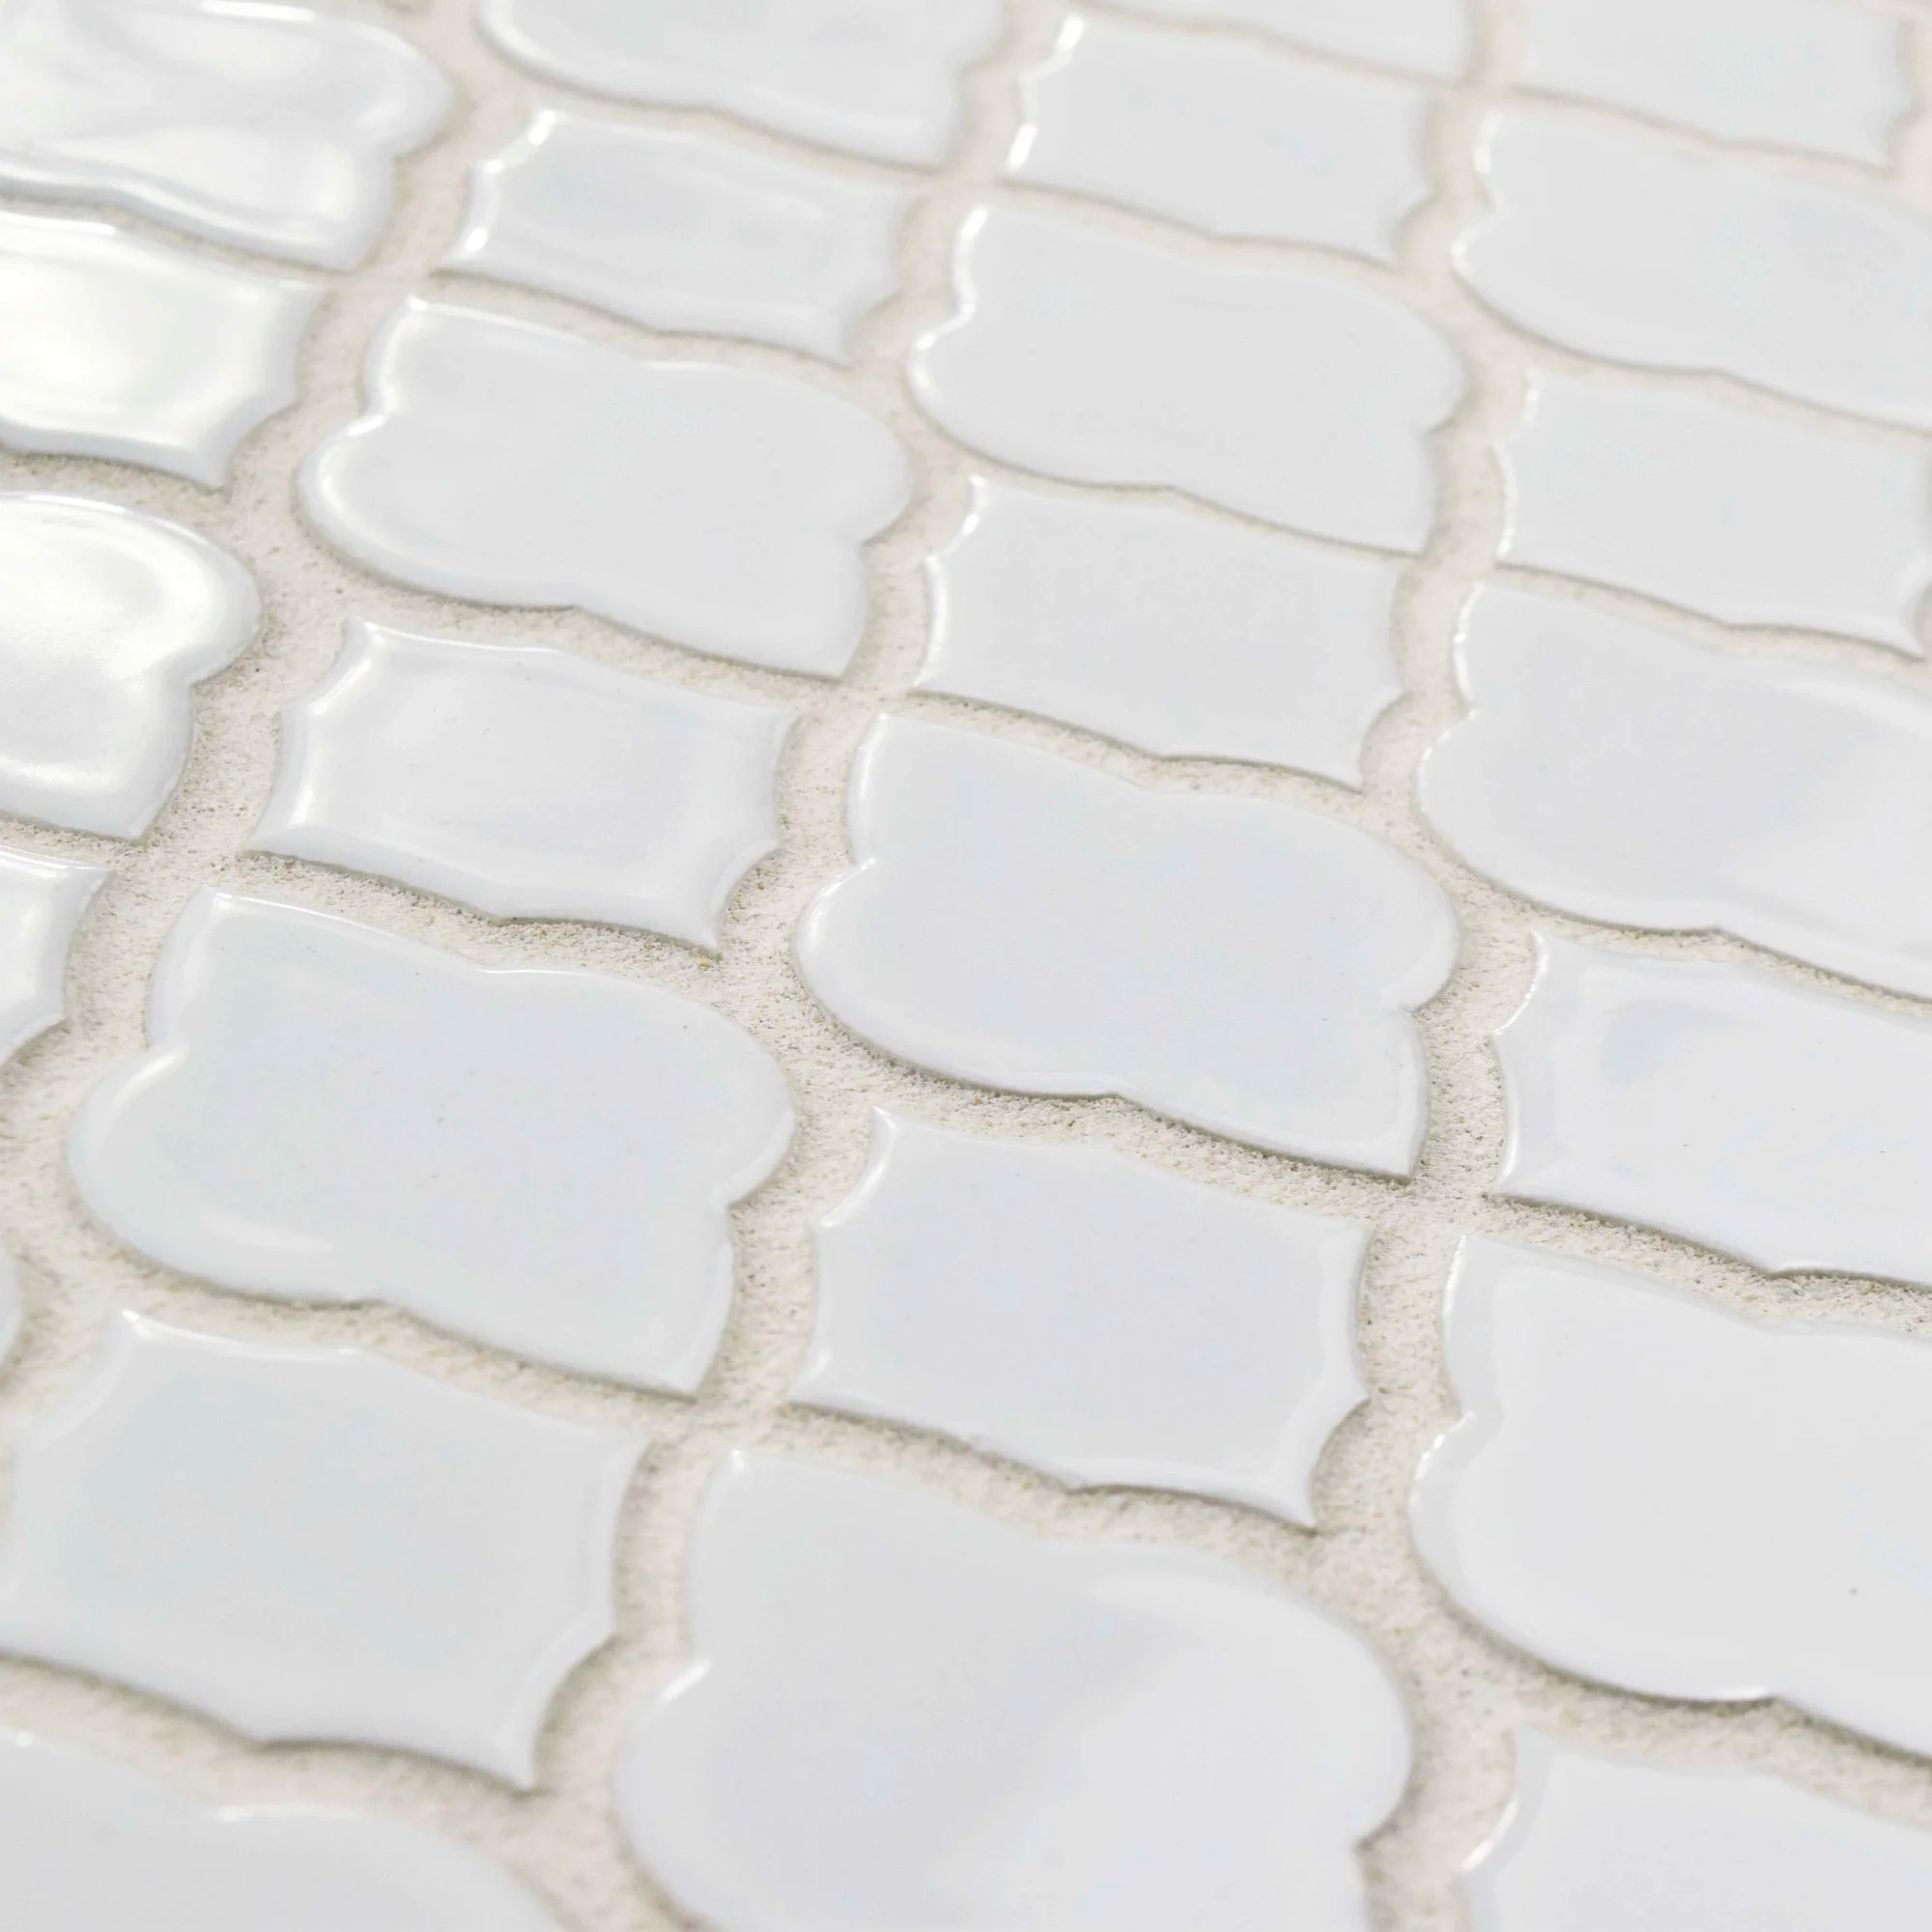 Elitetile Goulette 10 5 X 10 5 Ceramic Mosaic Floor And